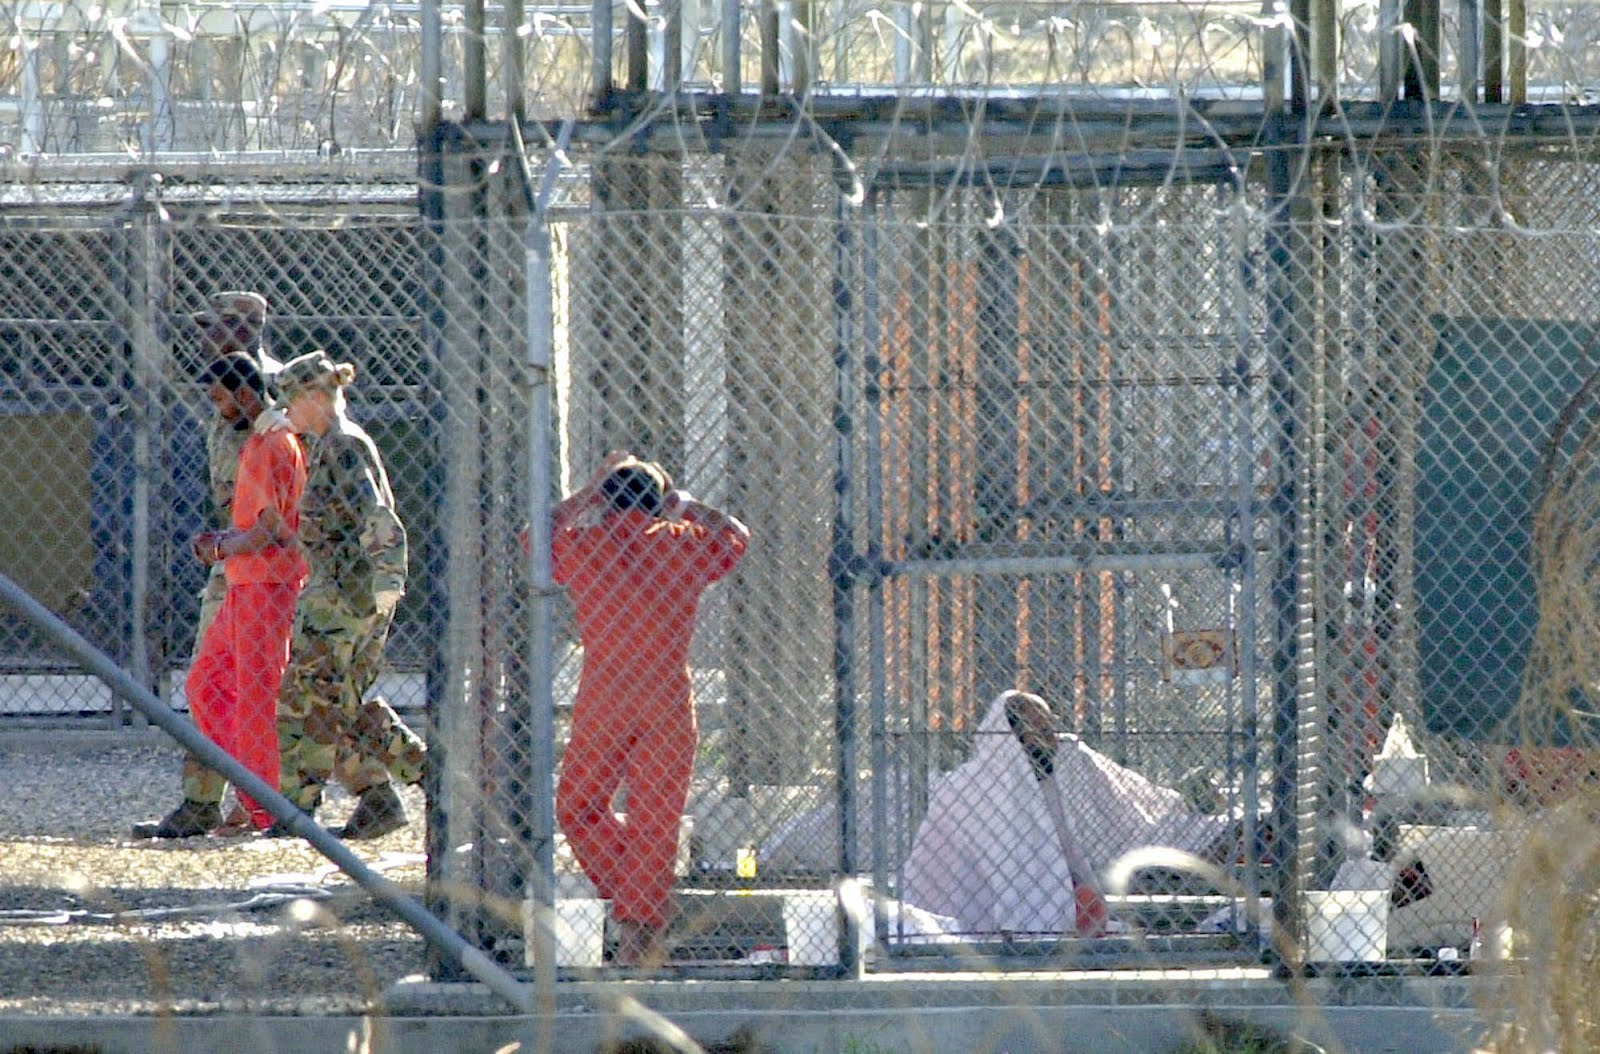 Inmates, Guards at Camp X-Ray. Guantanamo Bay, Cuba. Owned and Provided by Miami Herald. Photographer Unknown.